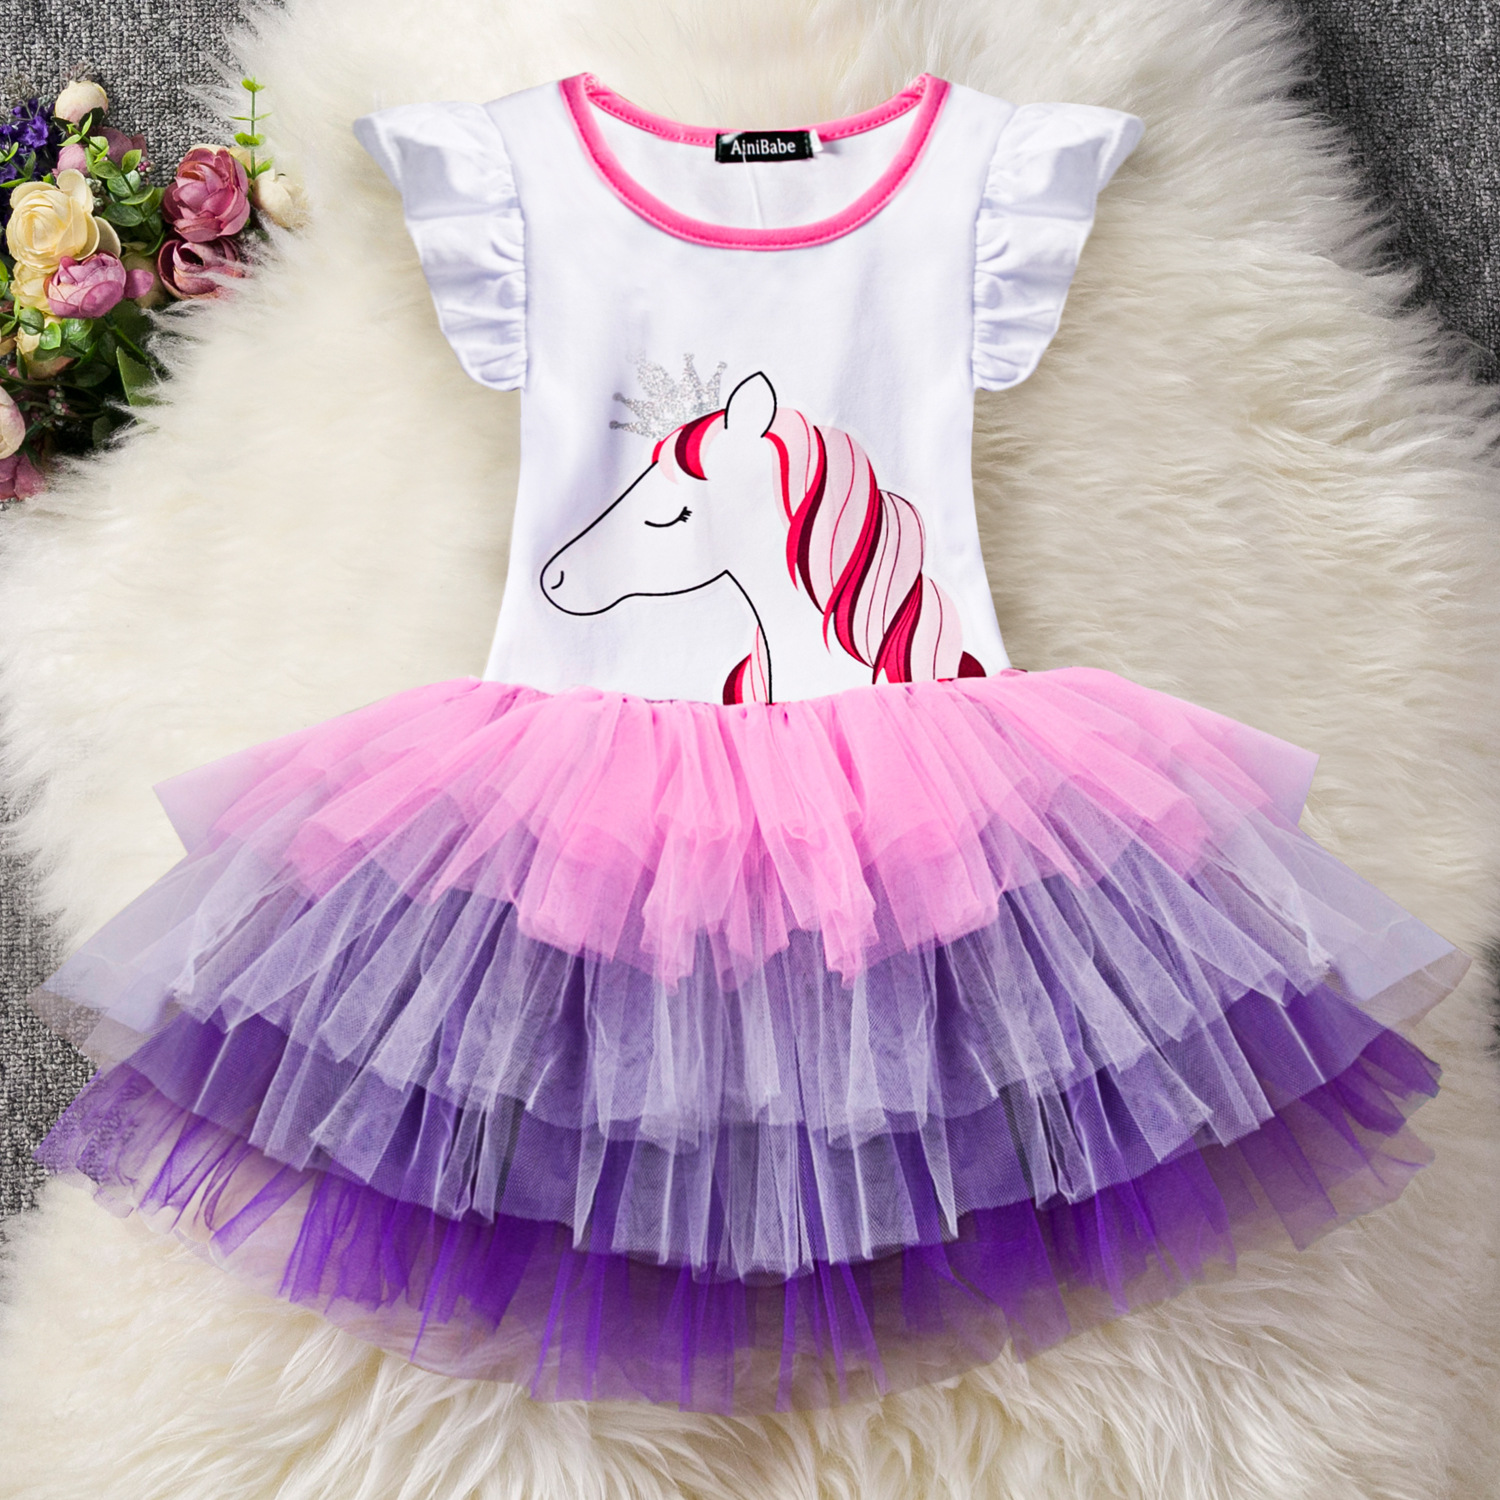 Summer New Korean Version of Unicorn Dress Mesh  Skirt  Ballet Pettiskirt Princess Tulle Party Dance Skirts for Girls